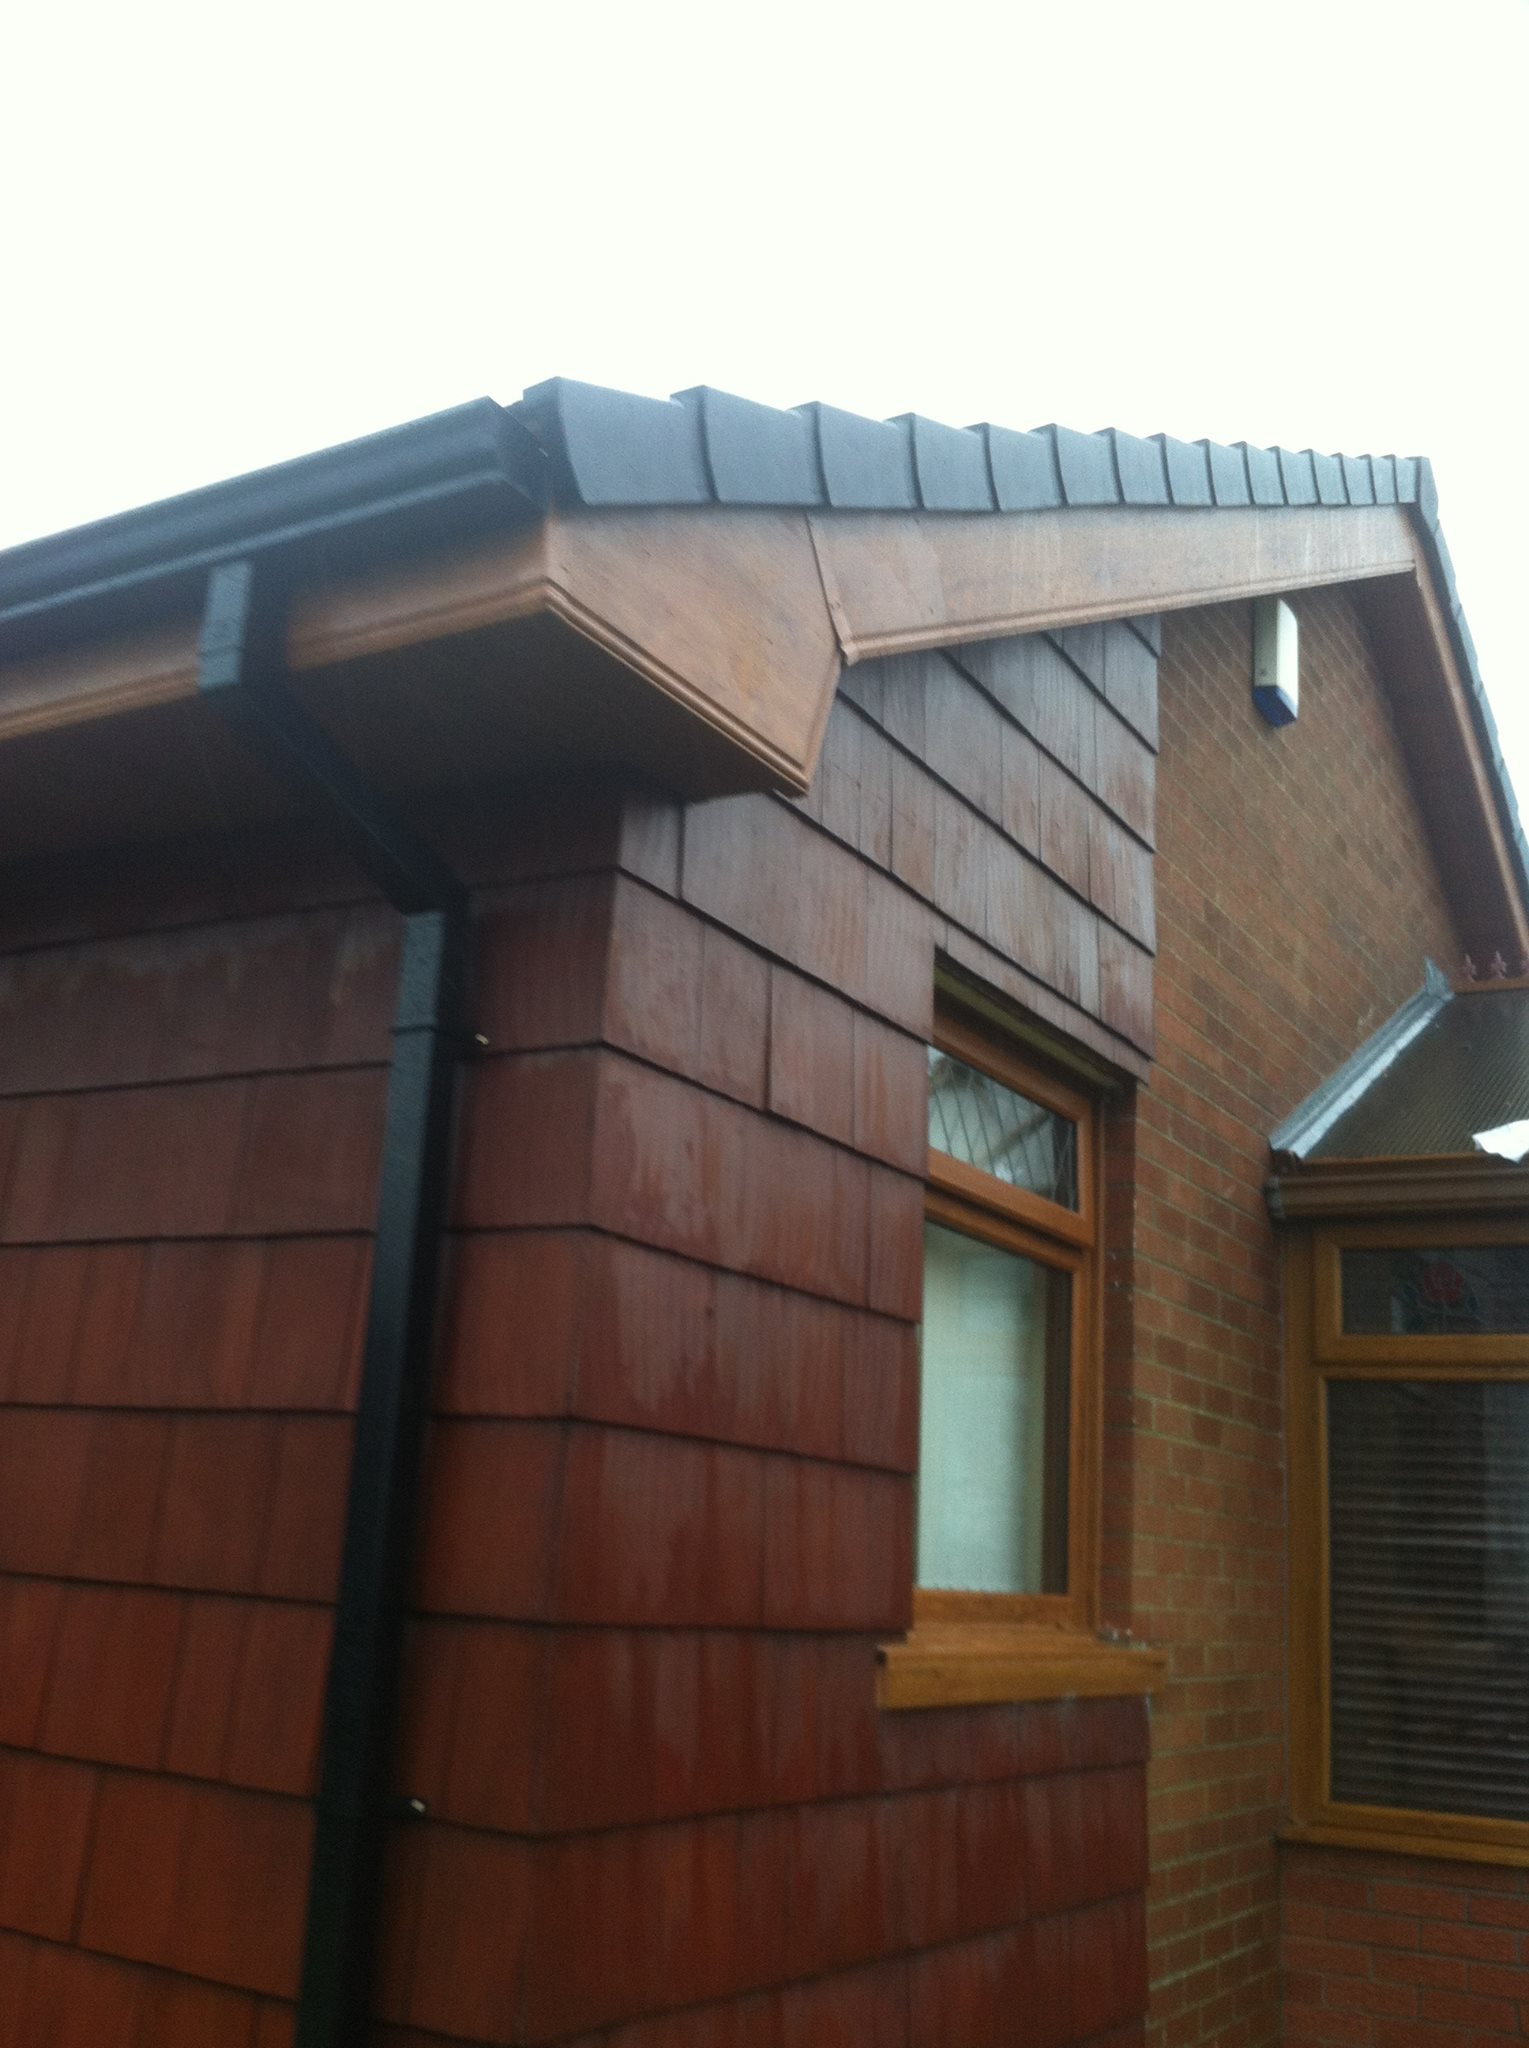 Black Fascia House Contemporary Exteriors Farmhouse: Roofline Direct NIRoofline Direct NI